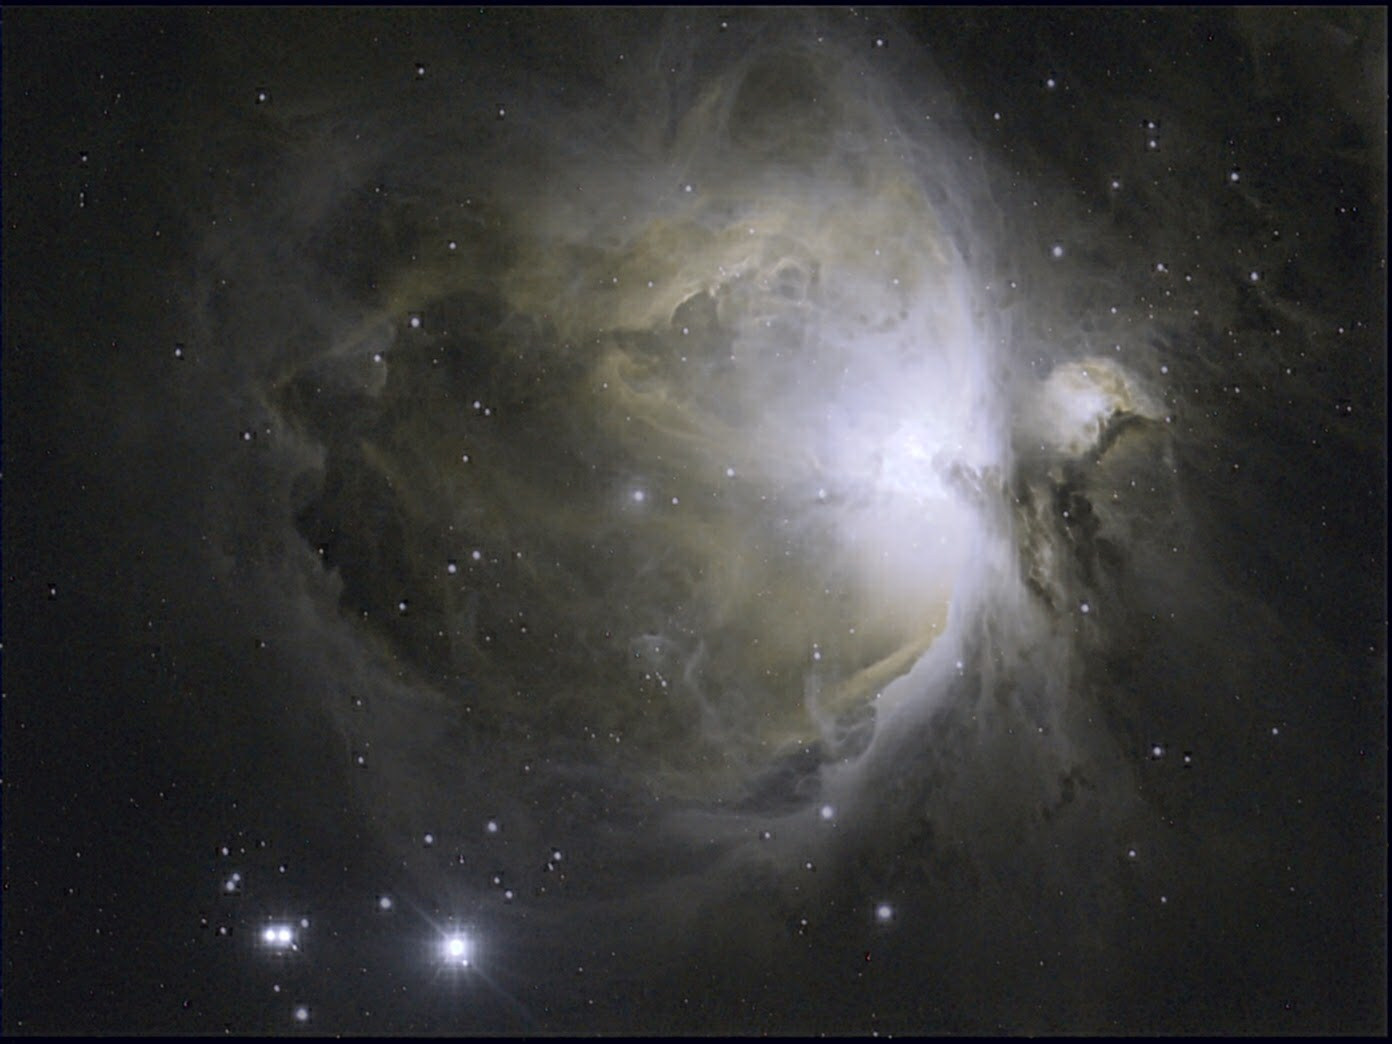 orion nebula distance from earth - HD1392×1044